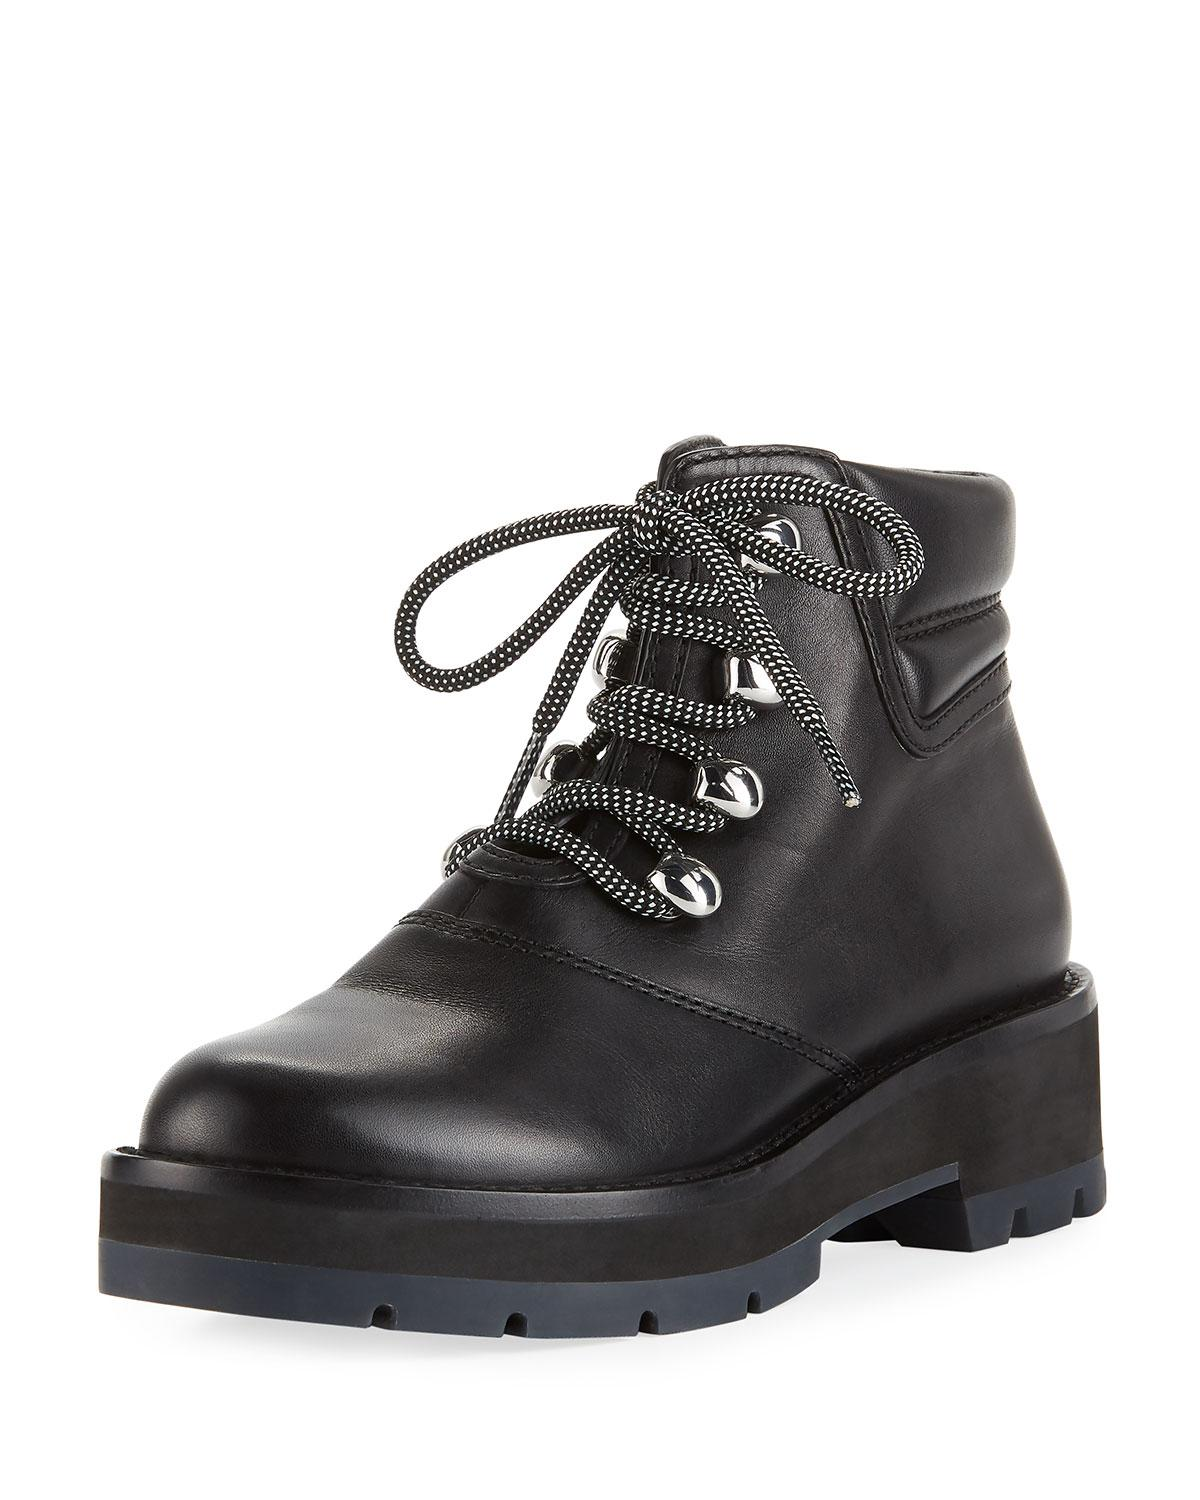 951210e791e7a Lyst - 3.1 Phillip Lim Dylan Lace-up Hiking Boot in Black - Save 20%